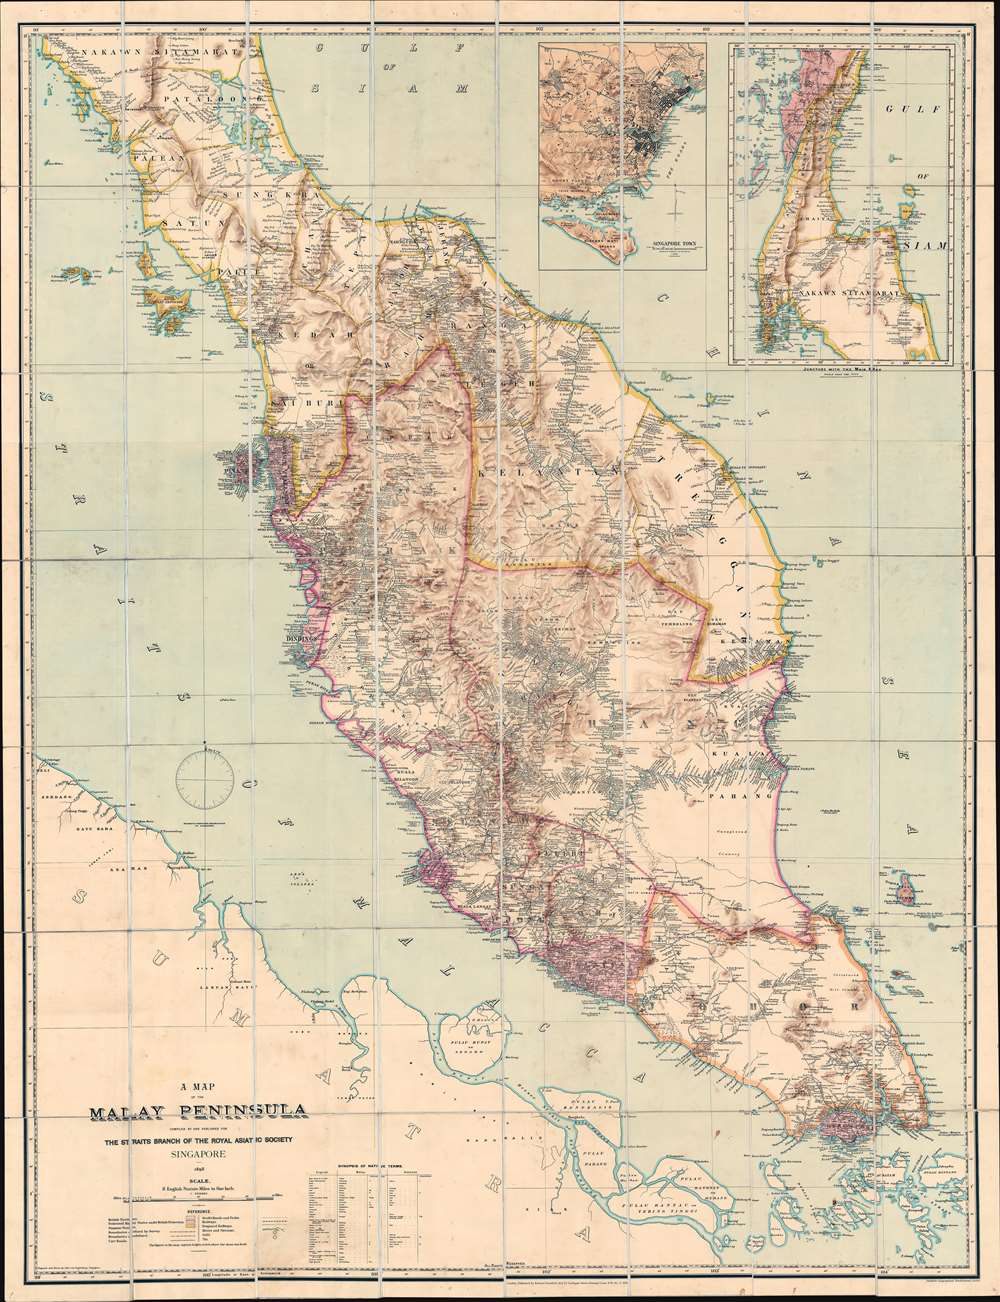 A Map of the Malay Peninsula Compiled by and Published for The Straits Branch of the Royal Asiatic Society Singapore. - Main View